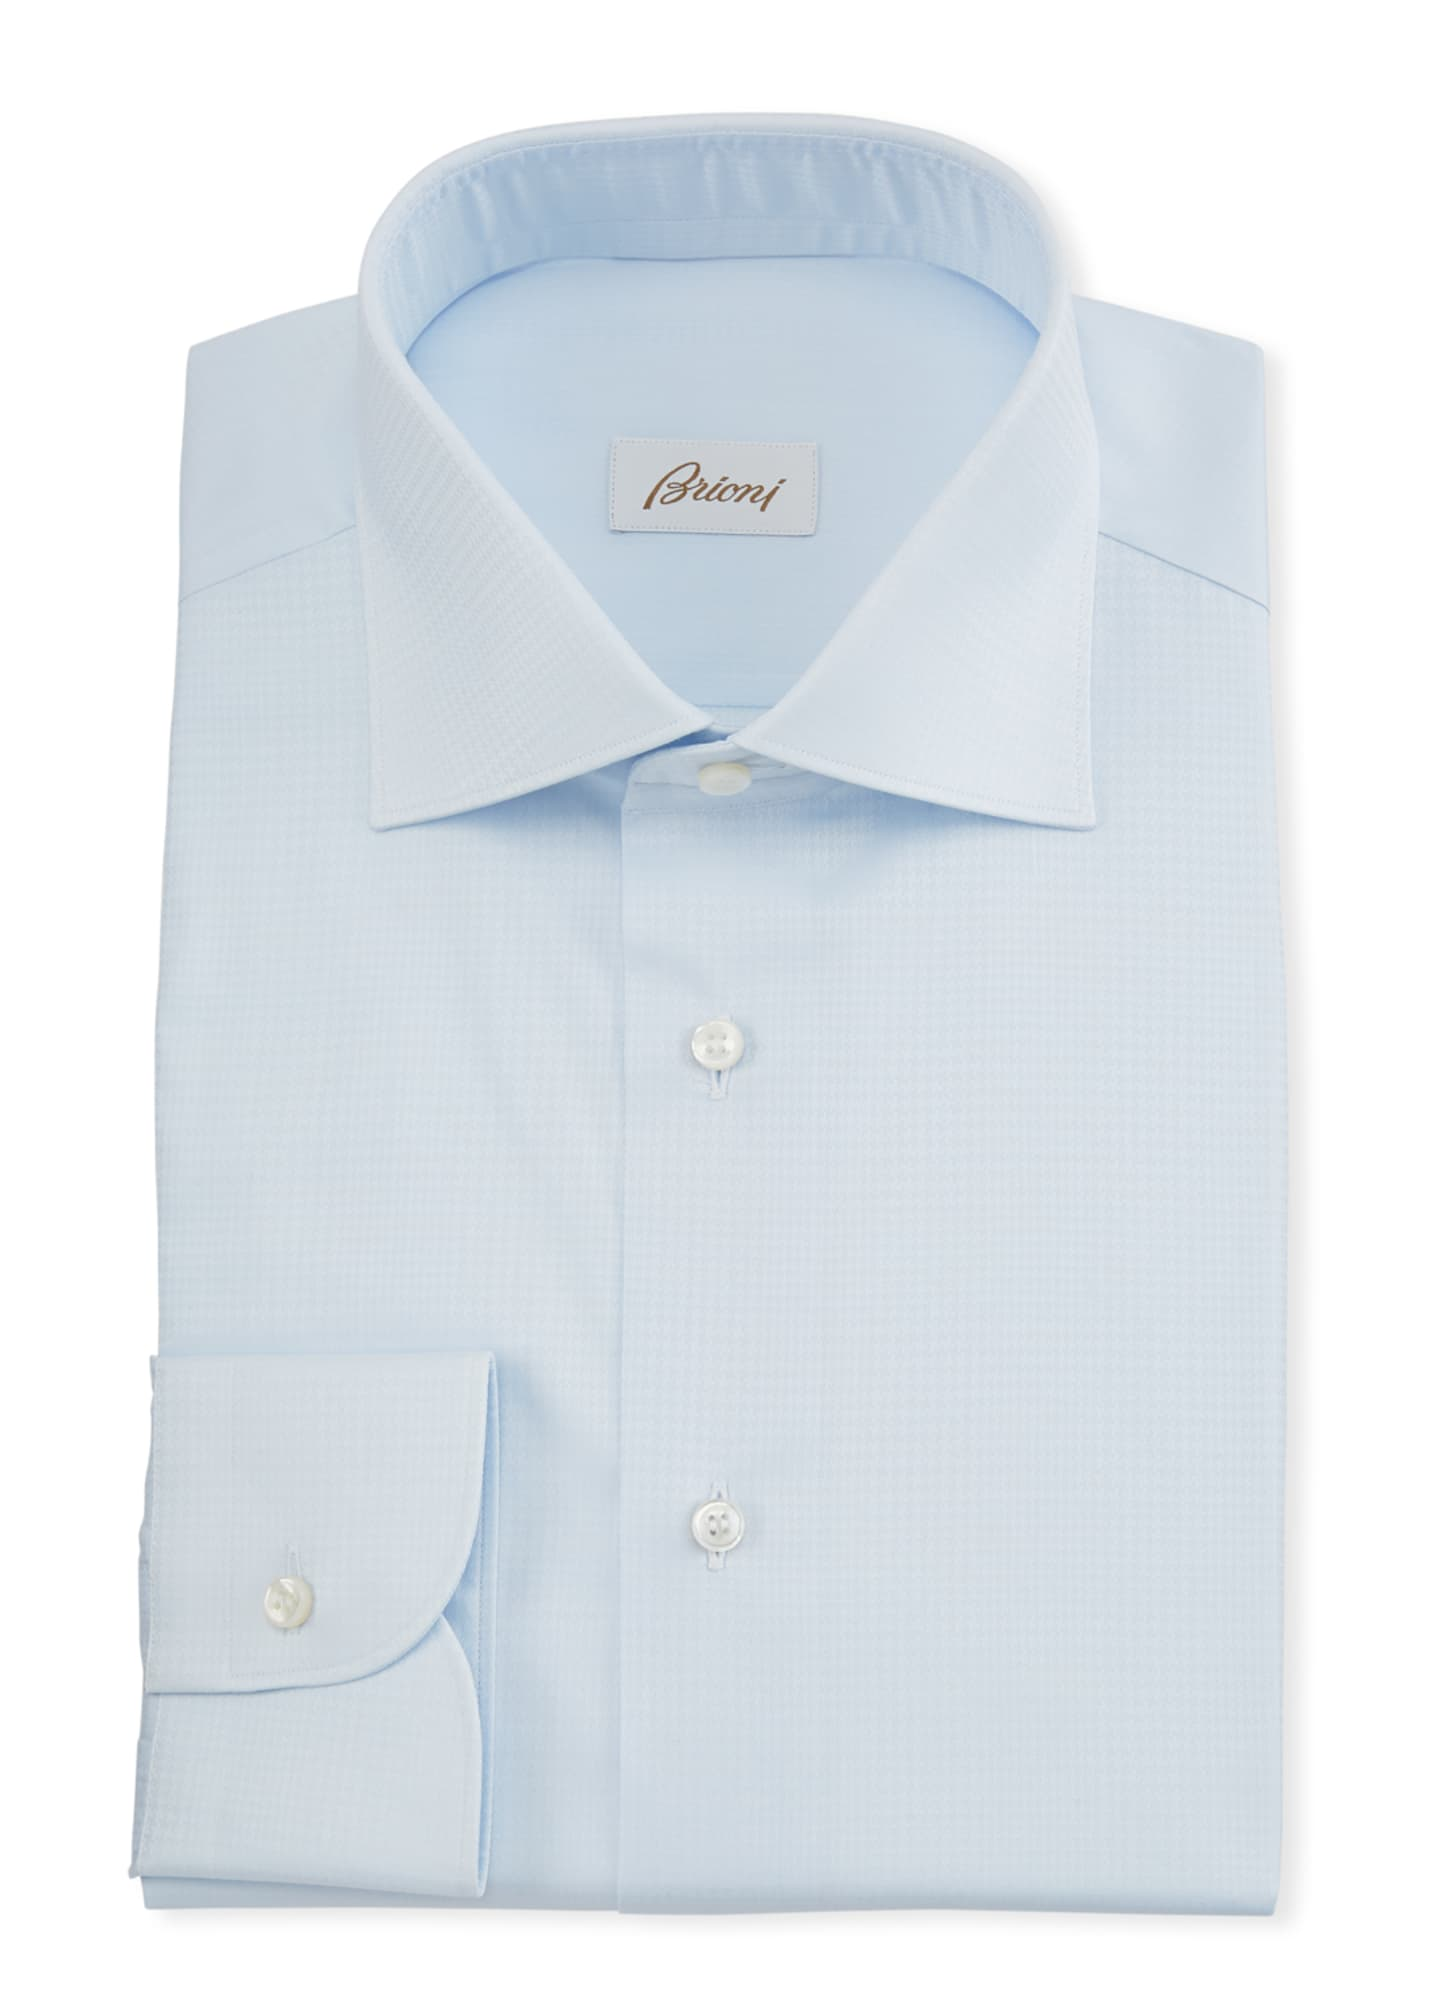 Brioni Men's Plaid Jacquard Dress Shirt